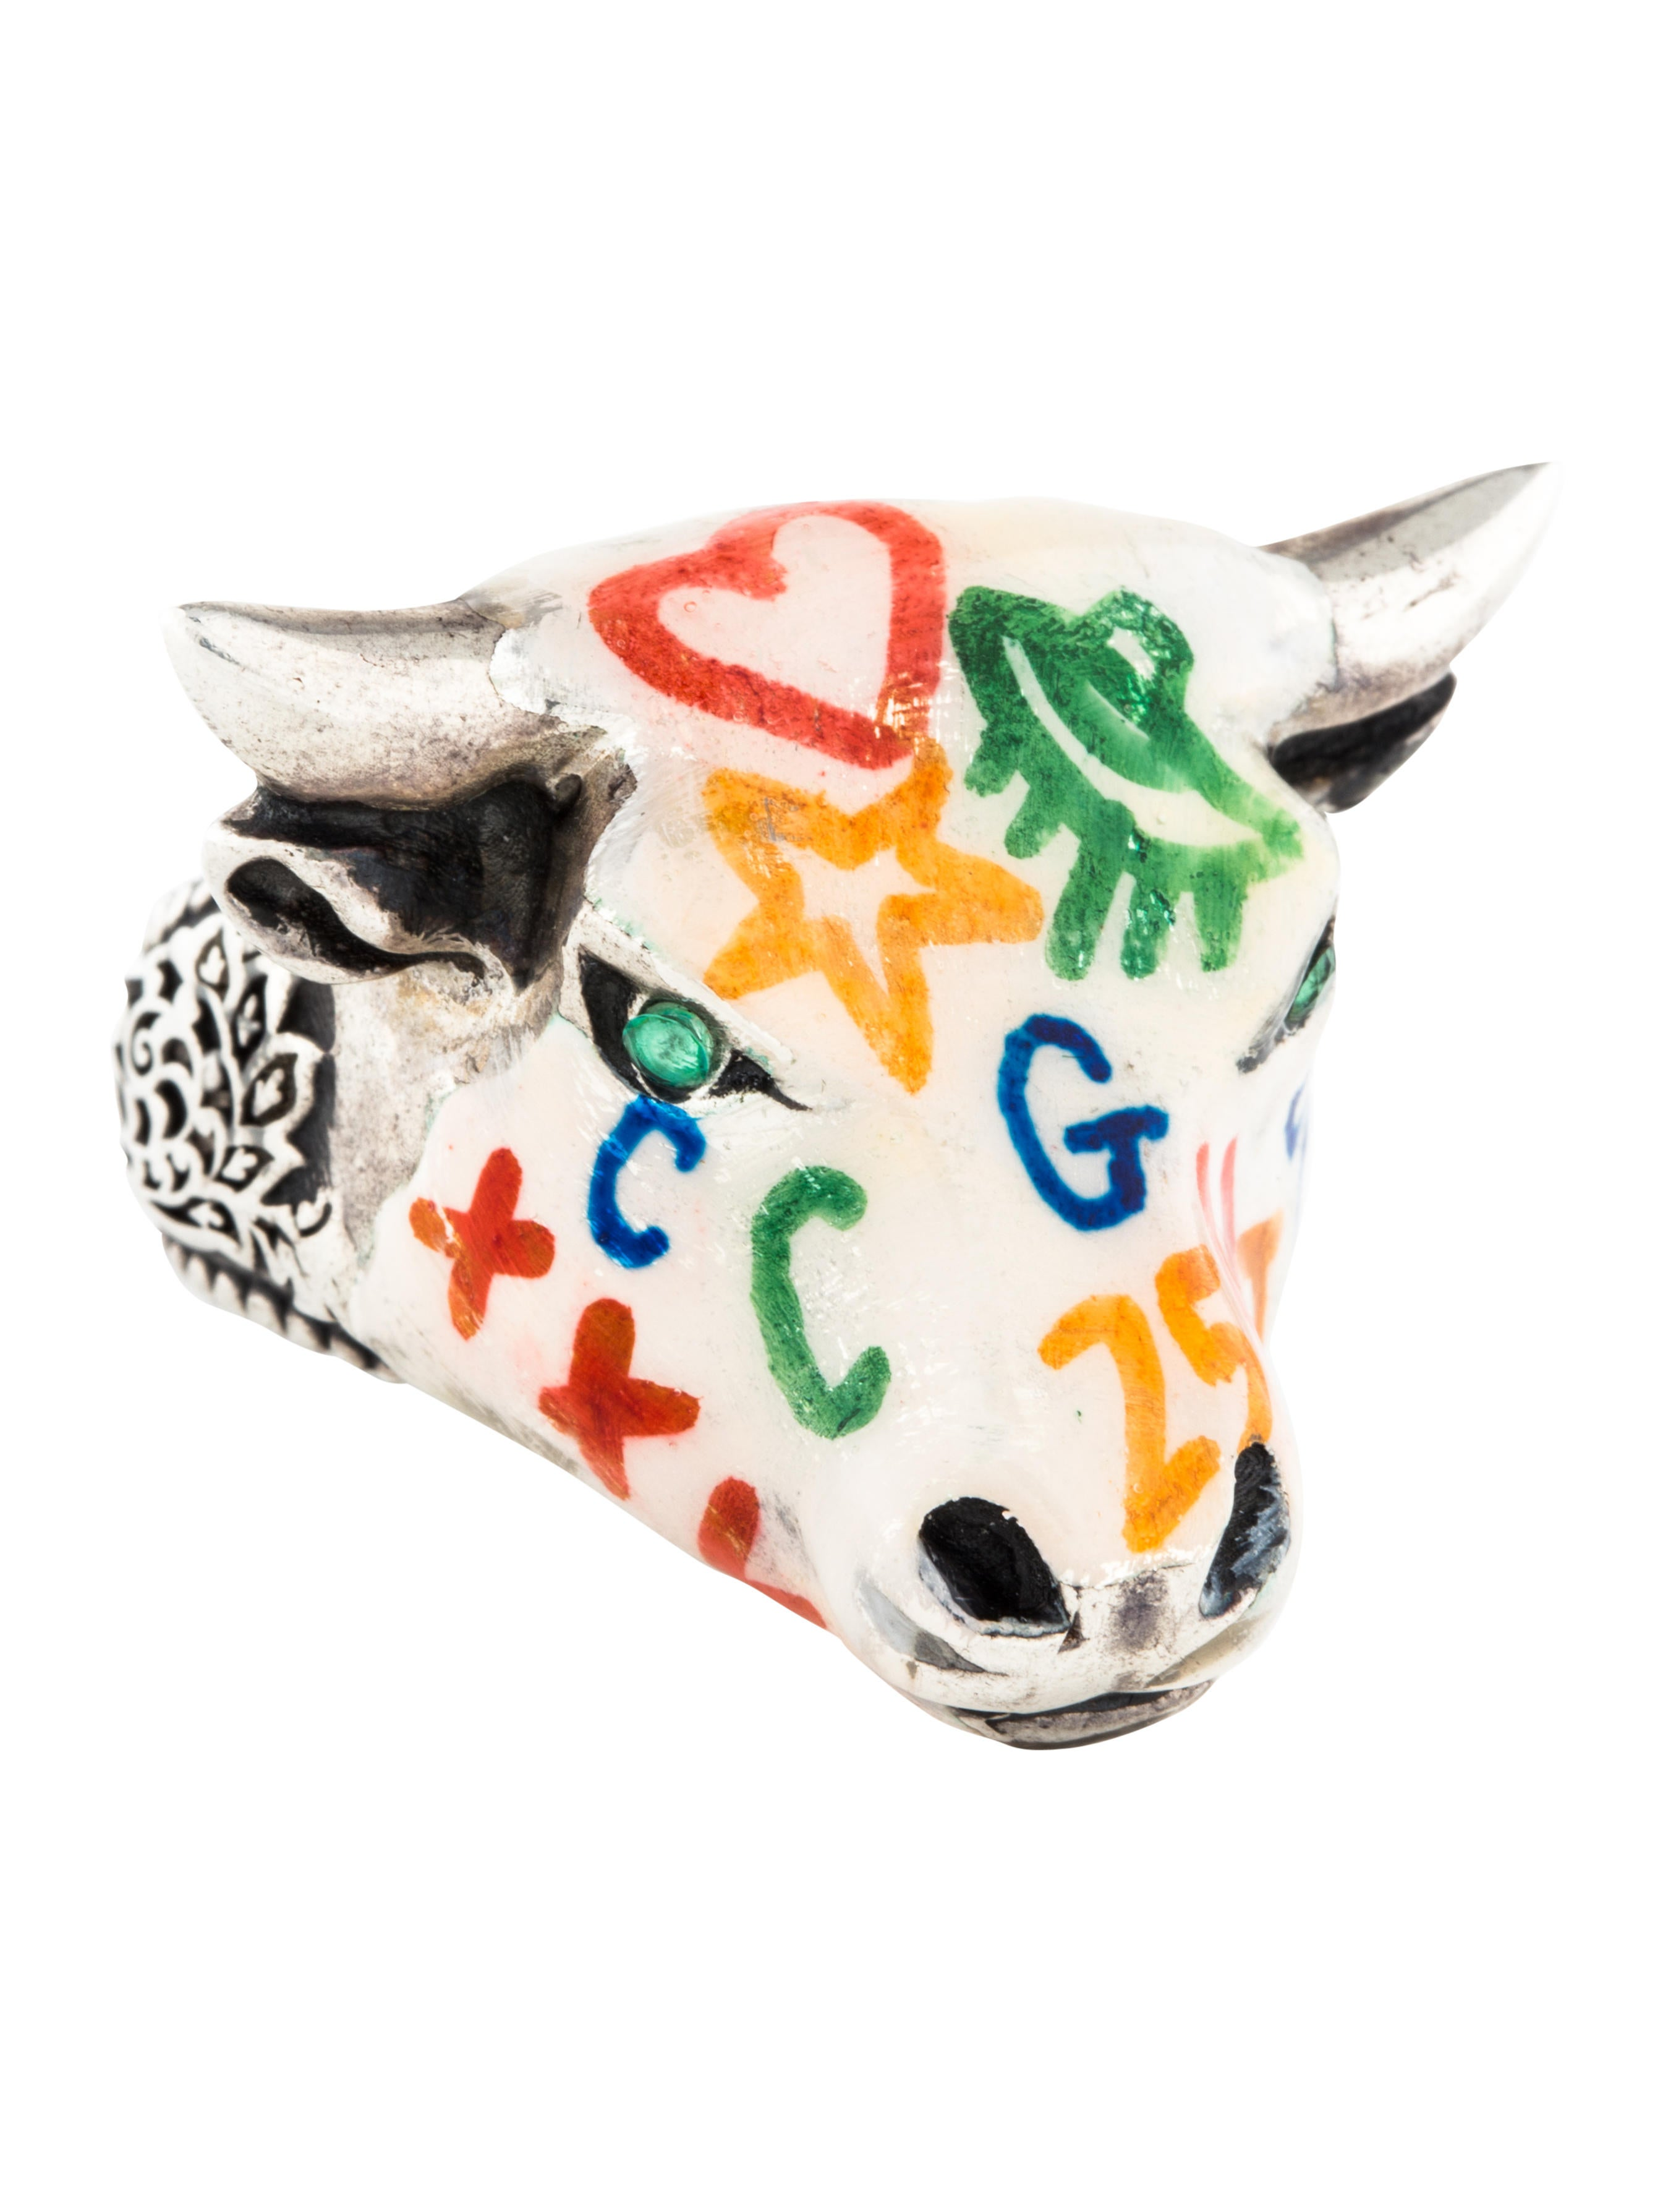 bcb564054e3d0 Gucci Anger Forest Enamel Bull Head Ring - Rings - GUC185441